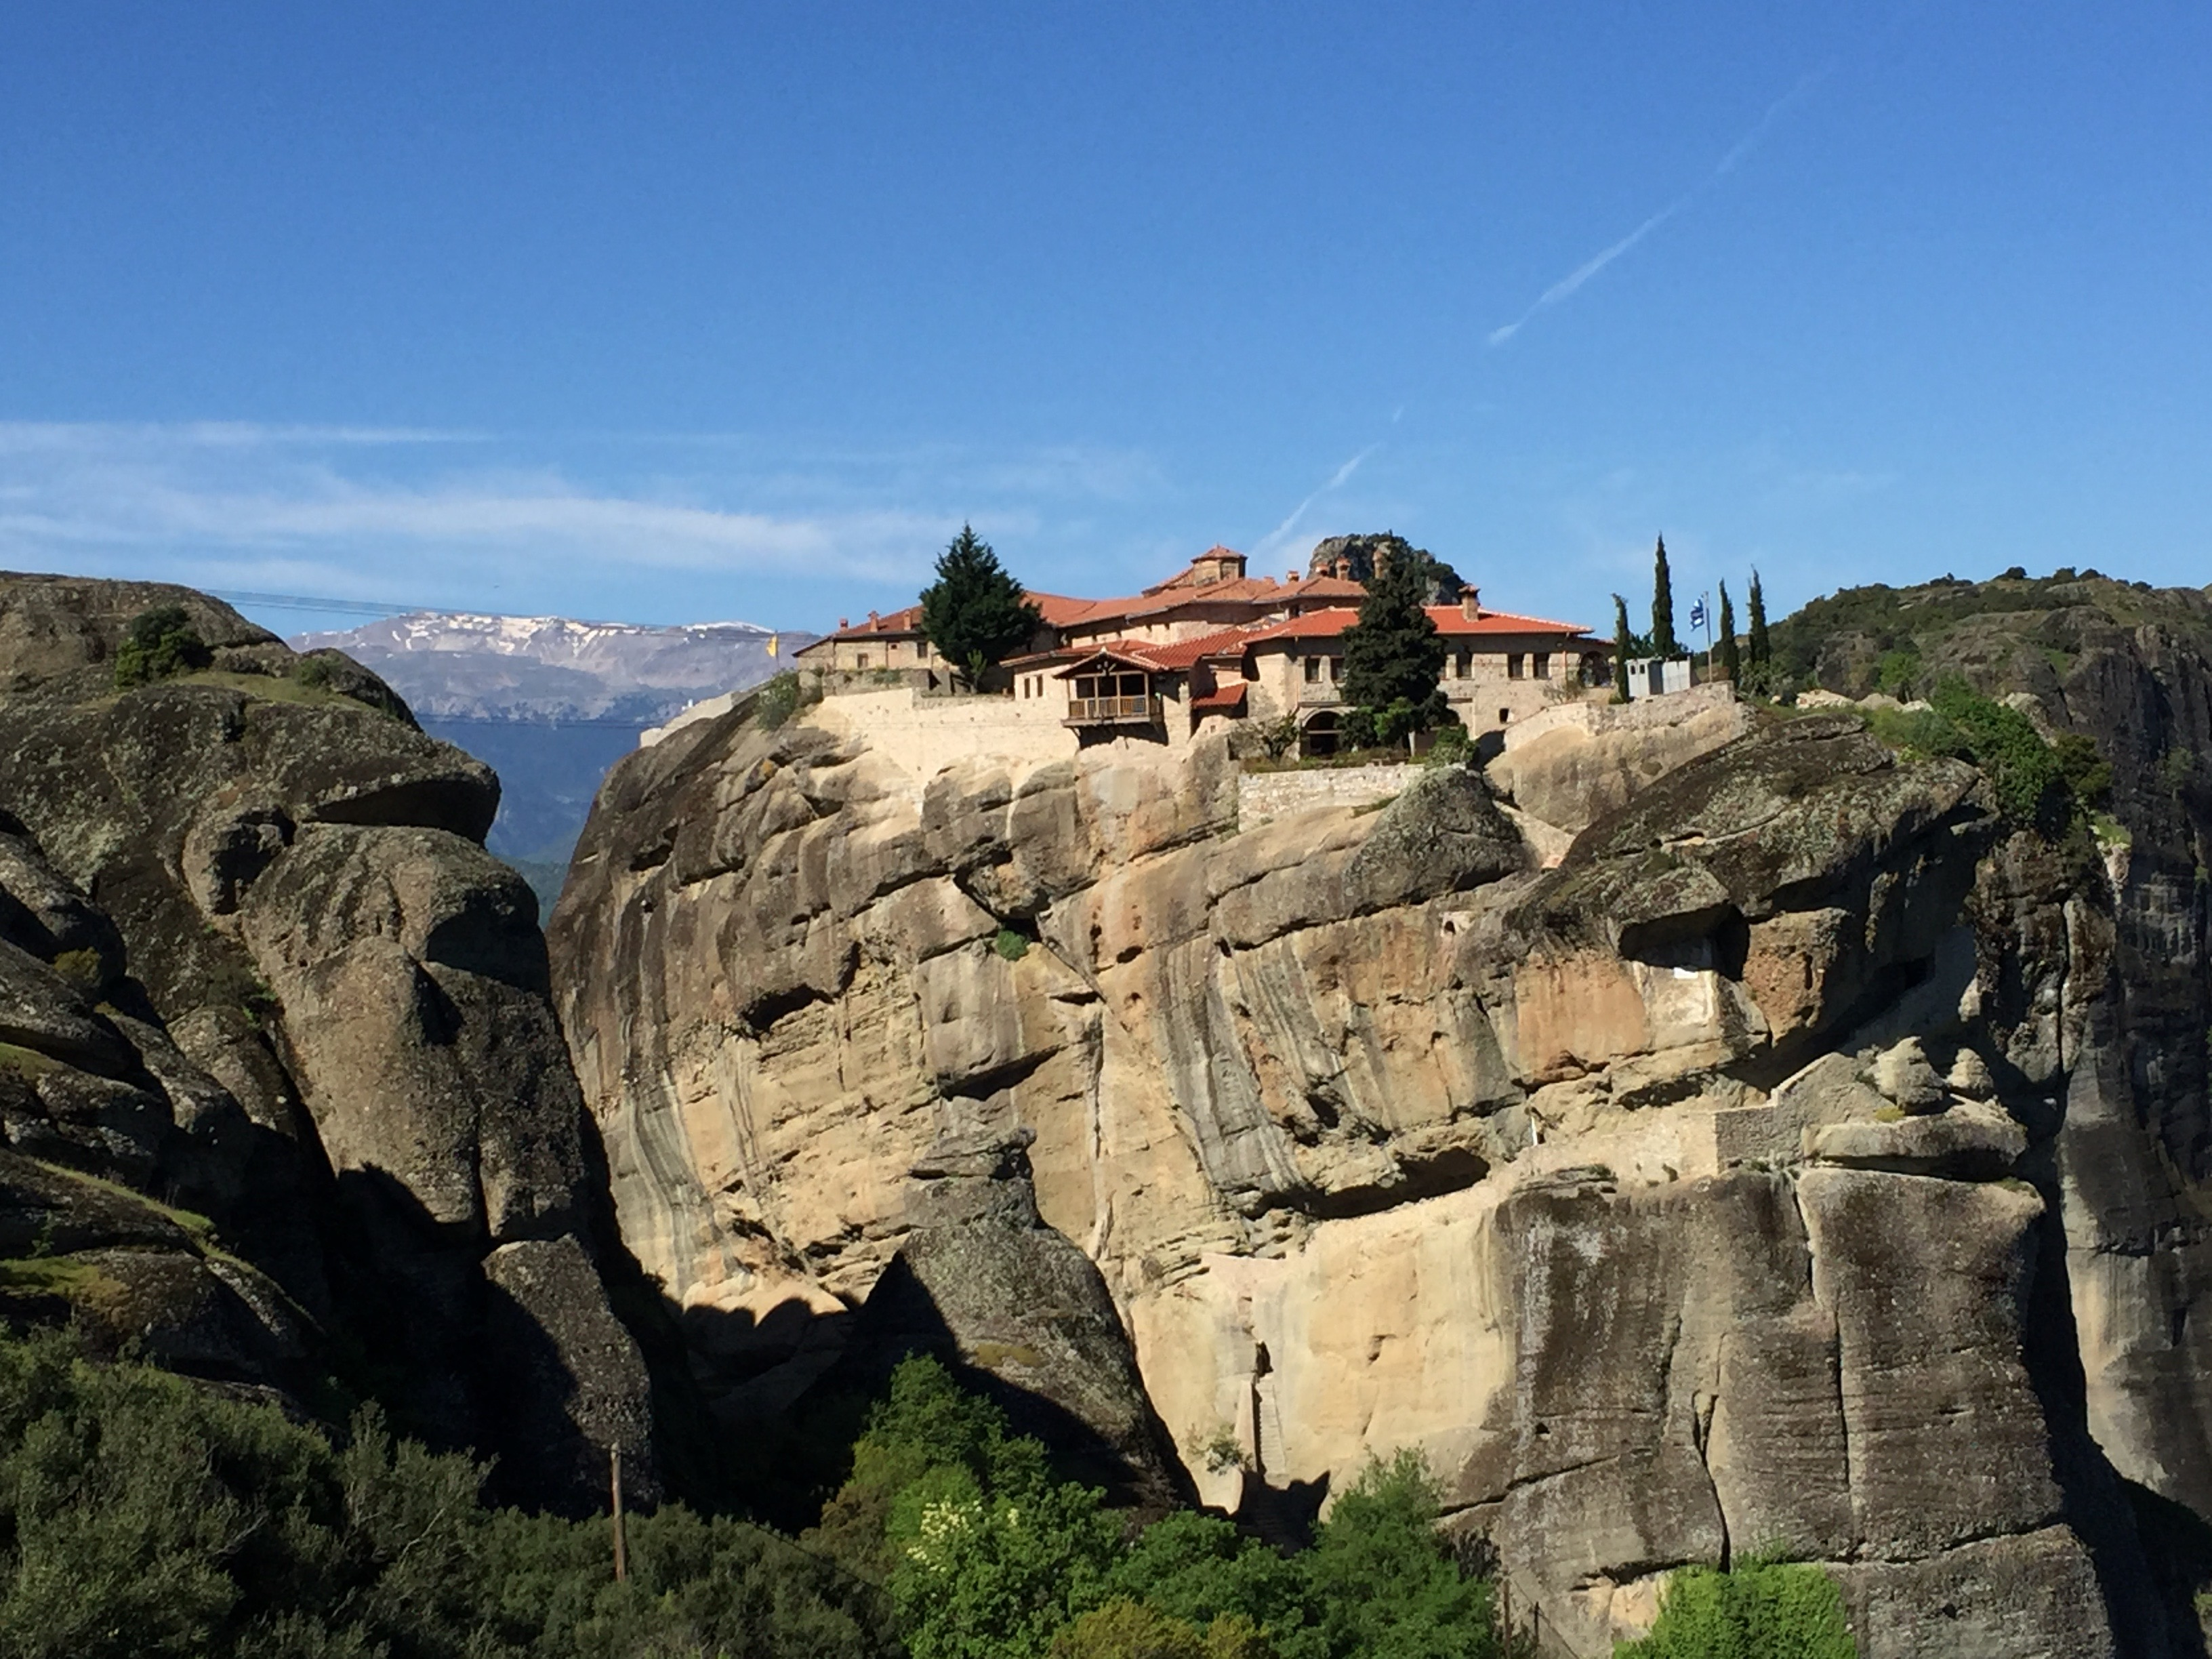 Meteora, location of six still-active Greek Orthodox monasteries dating from the 9th century.